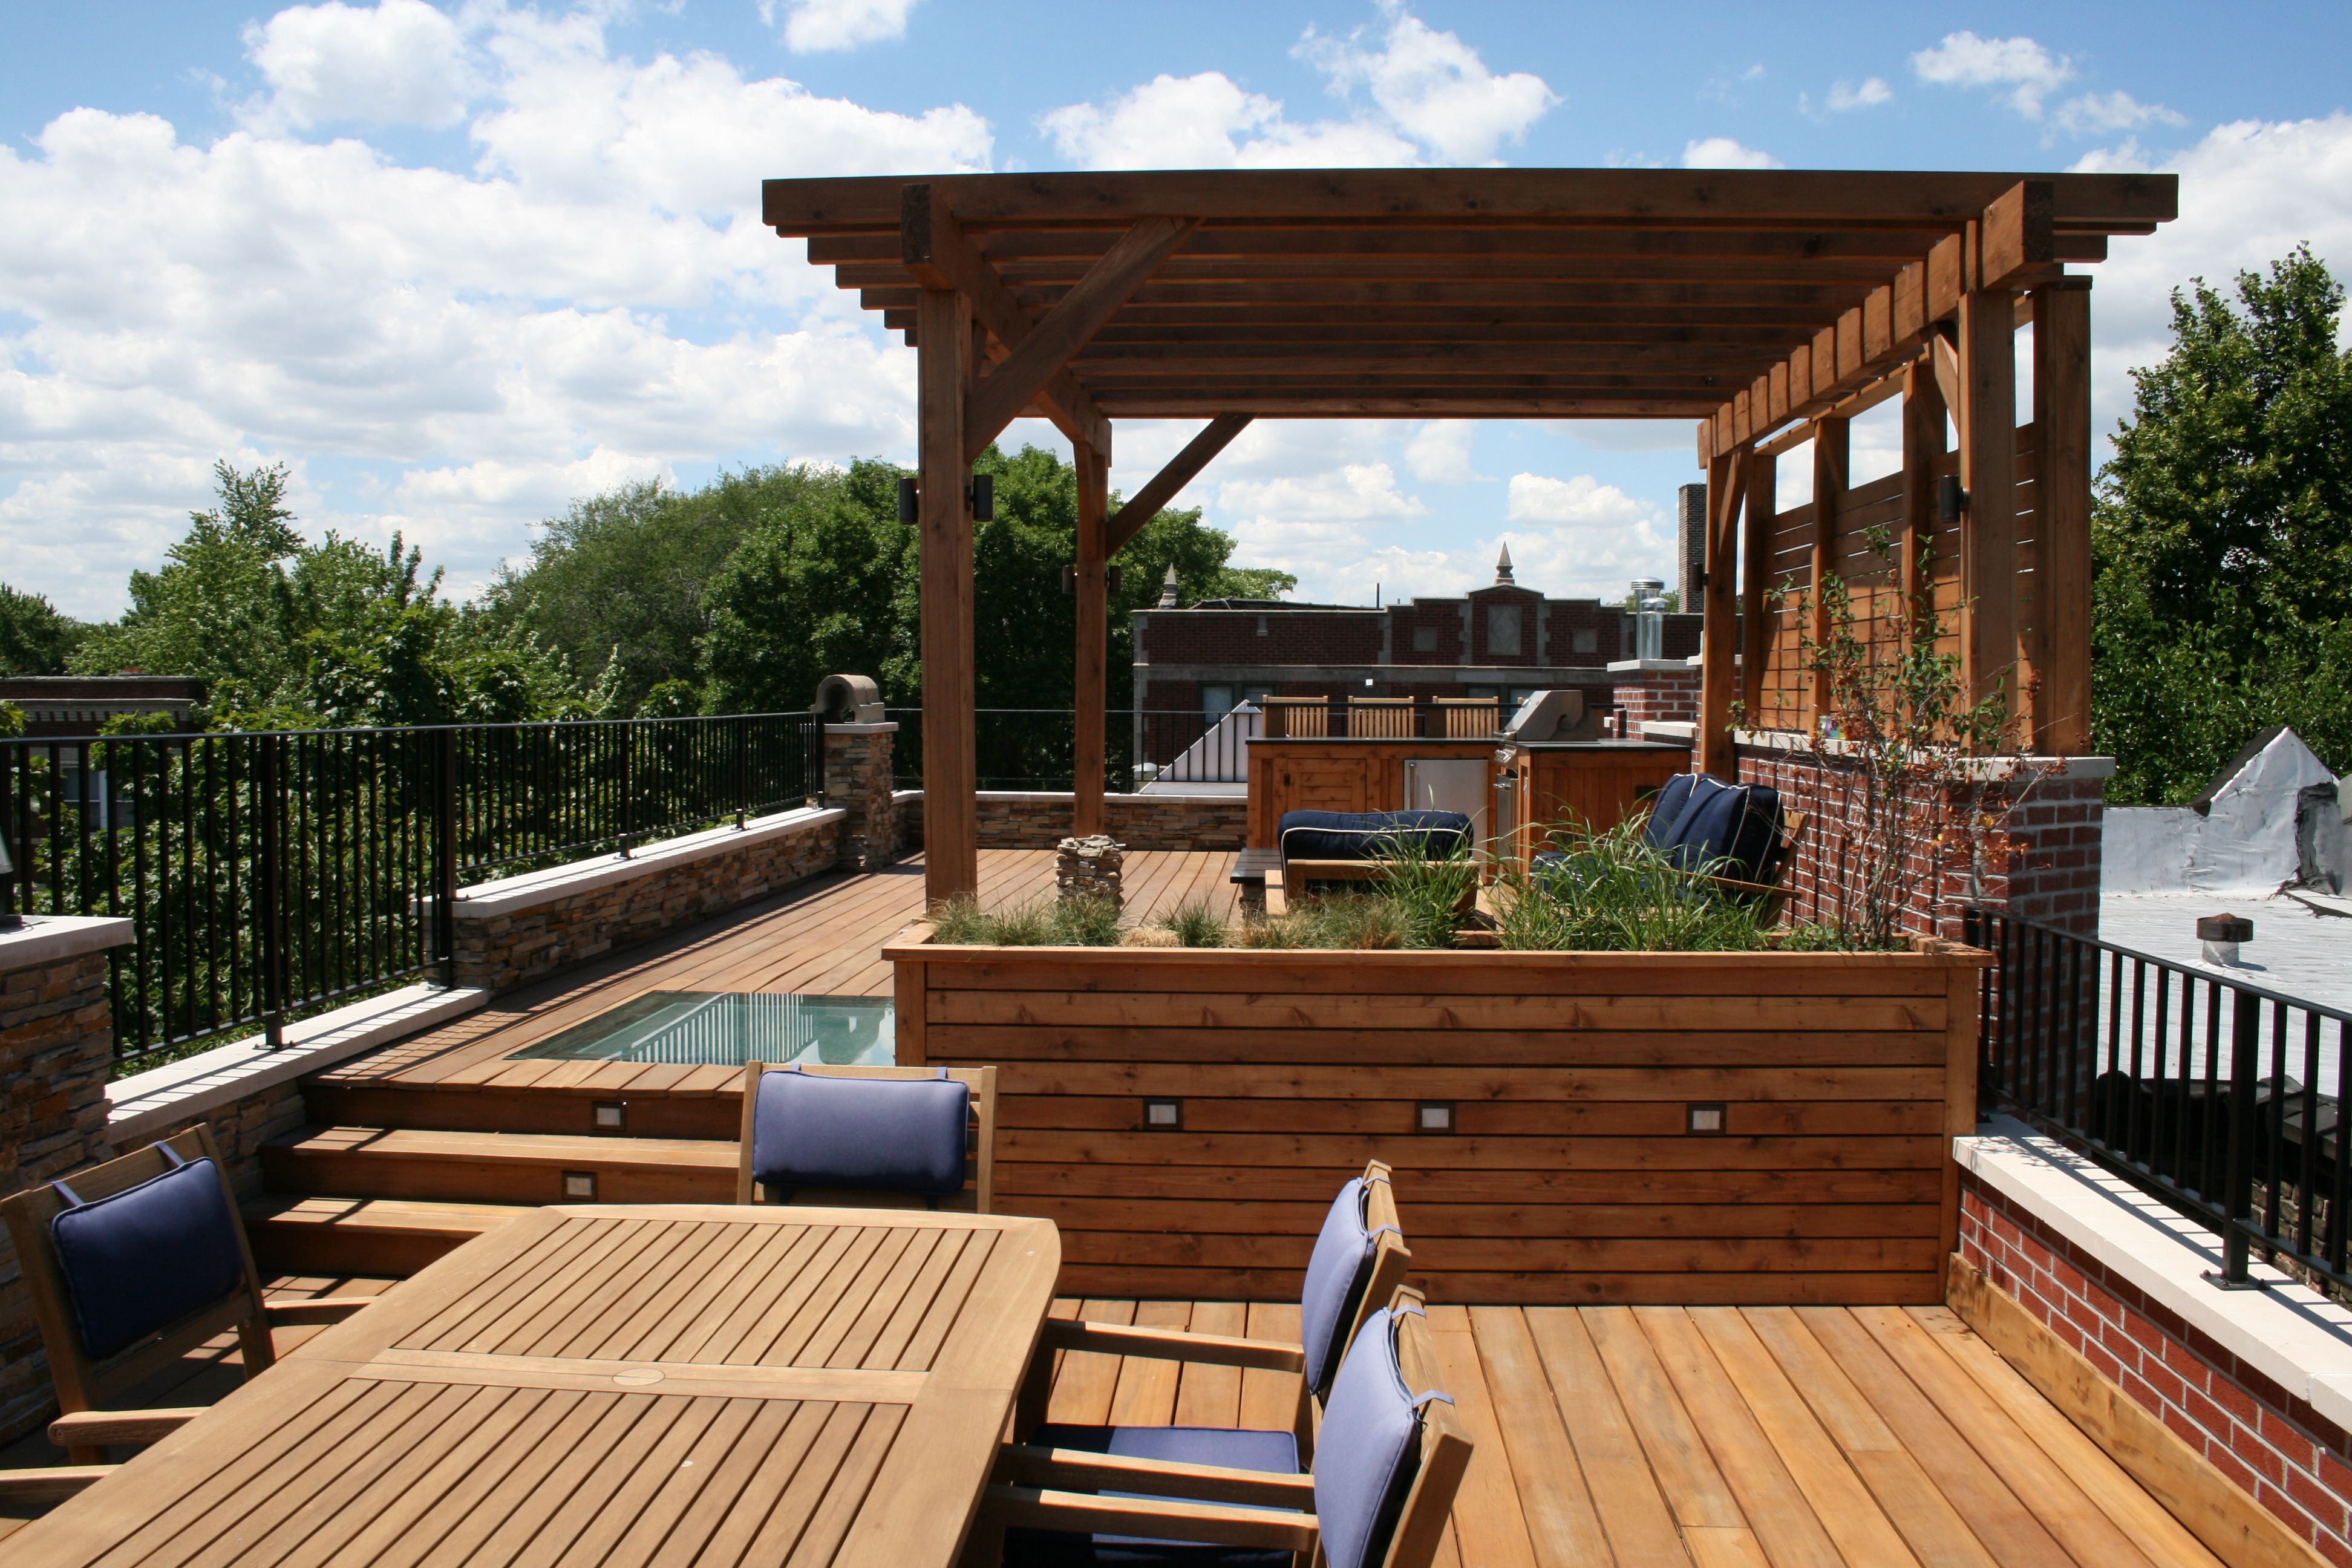 This Chicago Rooftop Features A Cedar Pergola With Lounge Seating And Fire Pit As Well Built In Grill Bar Area Dining Space